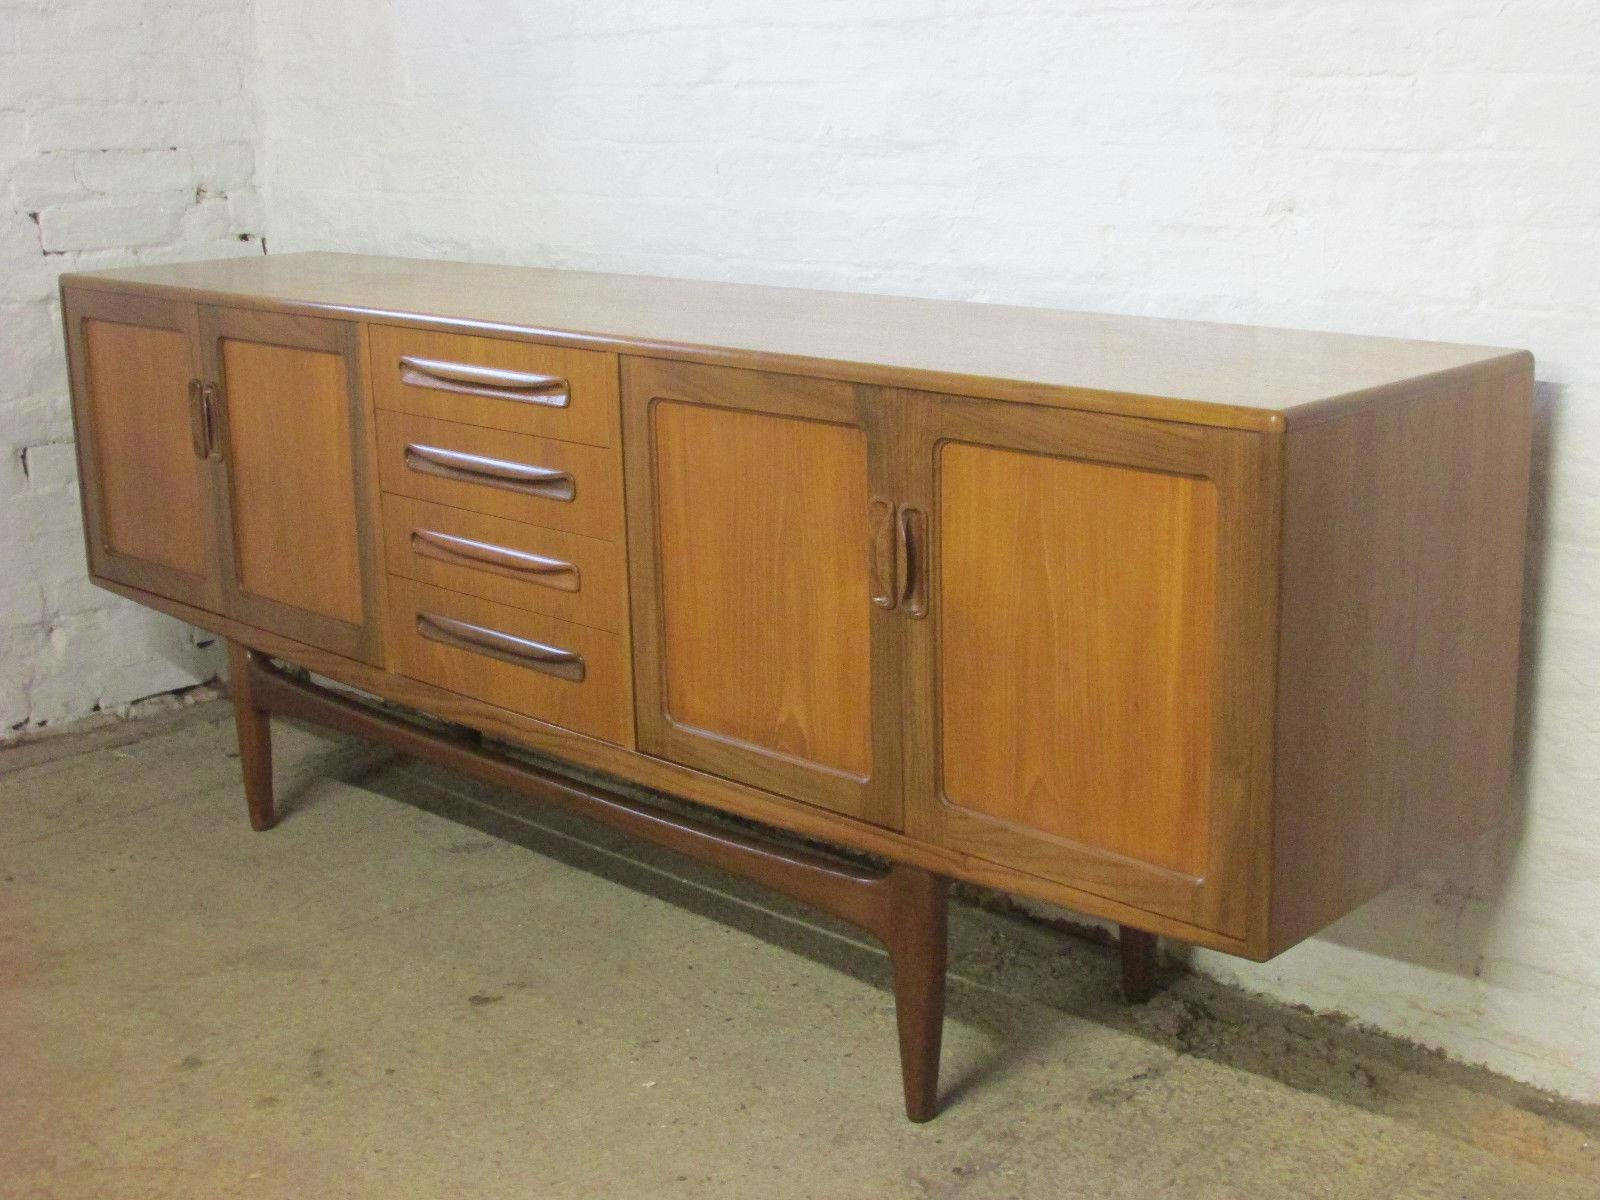 Retro 1960S/1970S G Plan Fresco 7 Ft Teak Sideboard With Cupboards In 7 Foot Sideboards (View 8 of 15)